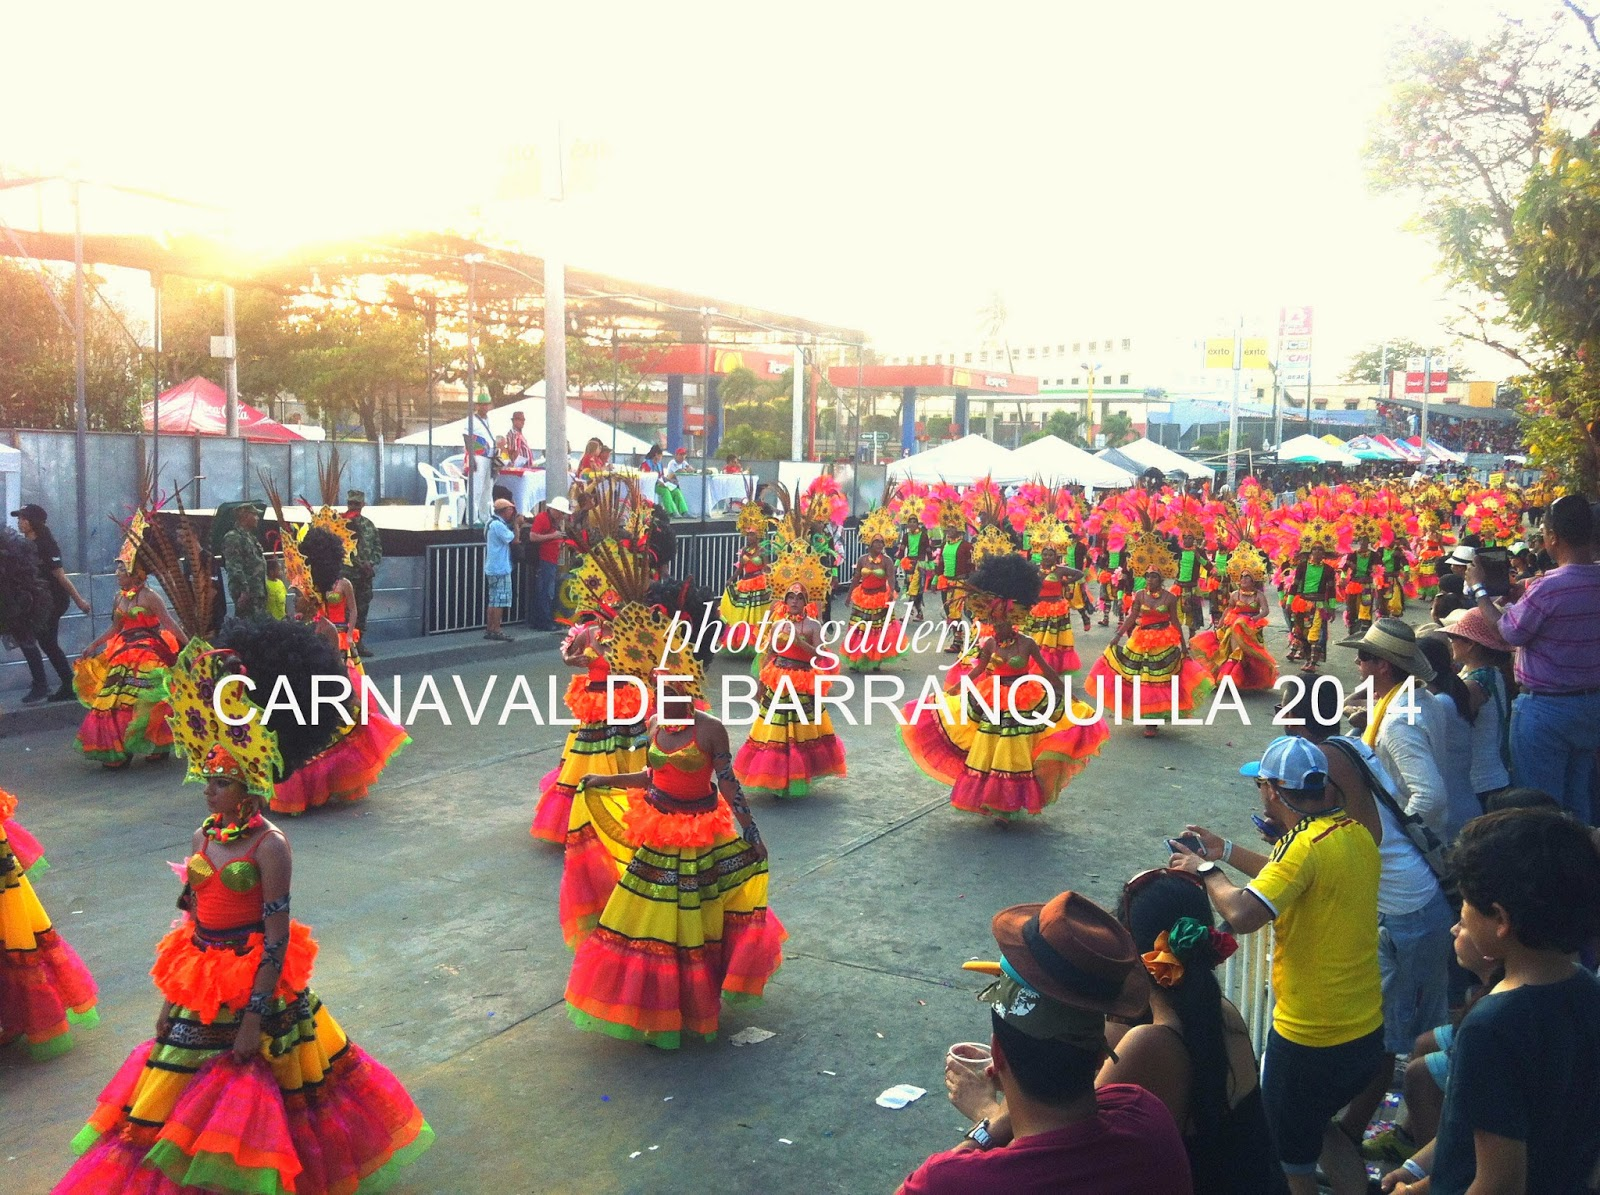 photo essay carnaval de barranquilla 2014 p s i m on my way dream come true the main purpose of my and extension in is to witness the beauty of the second biggest carnival in south america